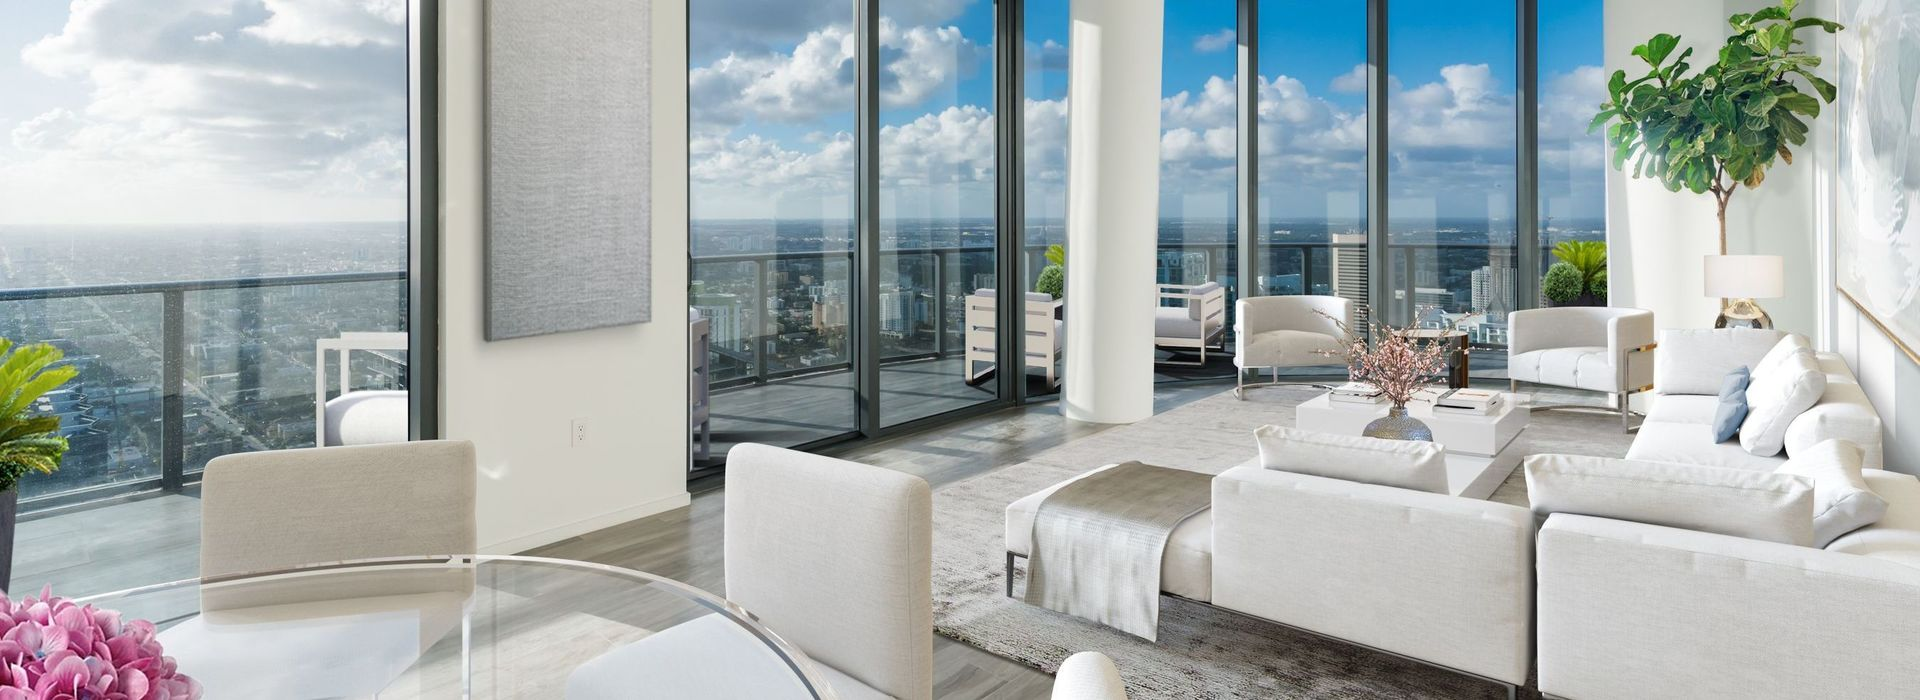 Exclusive 57Th floor Penthouse at SLS LUX